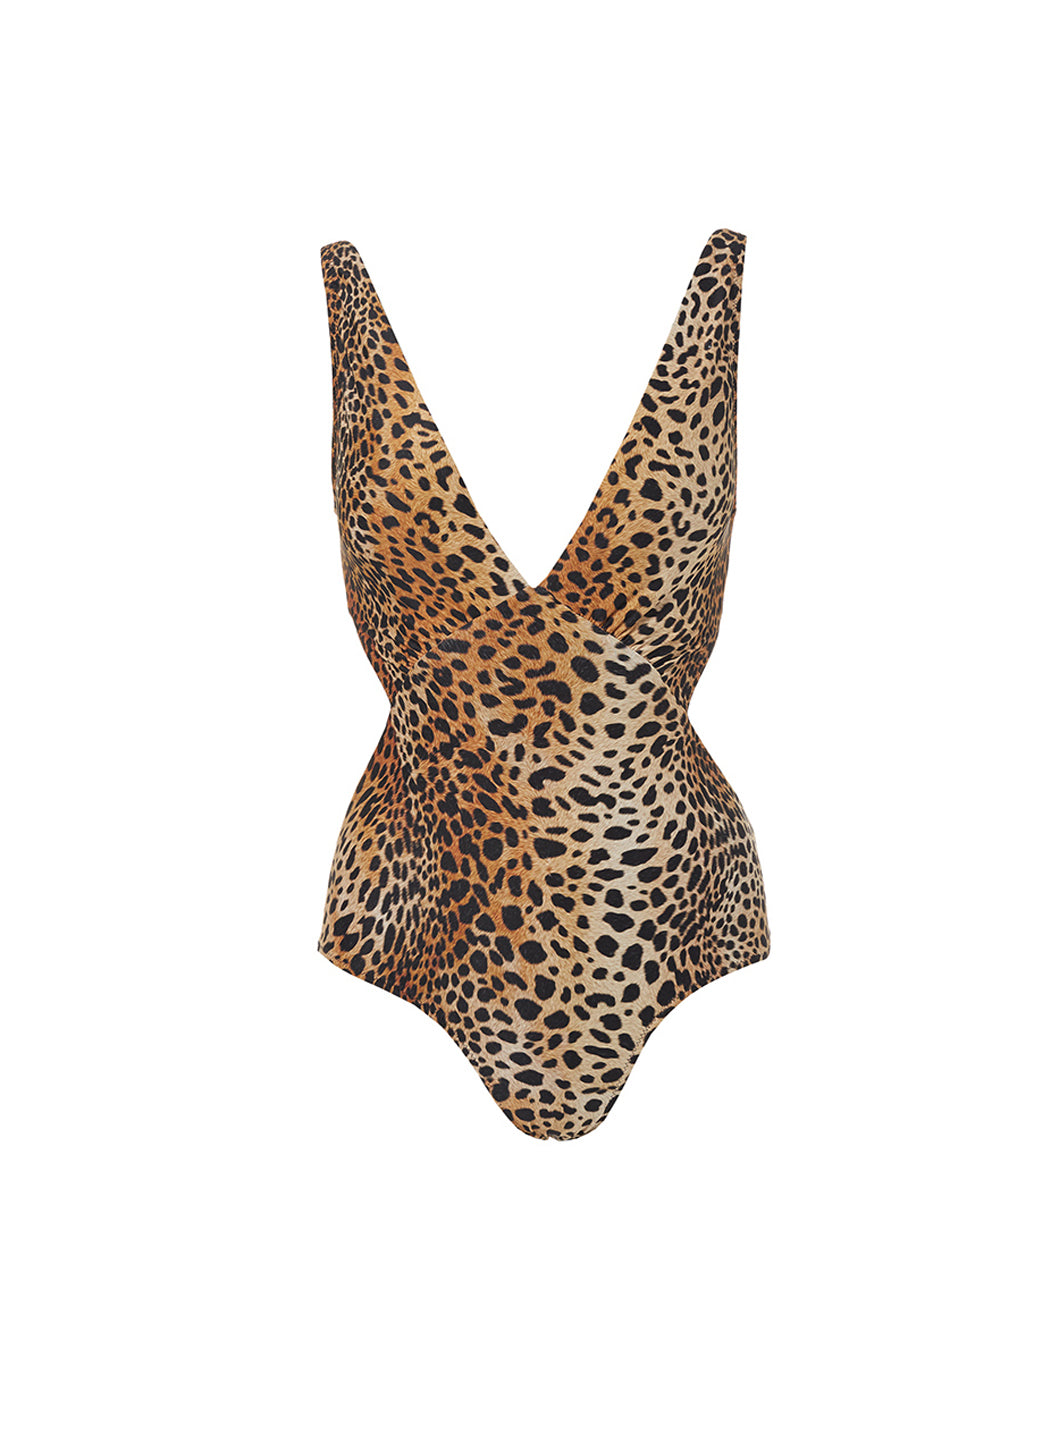 Delmar Cheetah Over The Shoulder V-Neck Cut Out Swimsuit